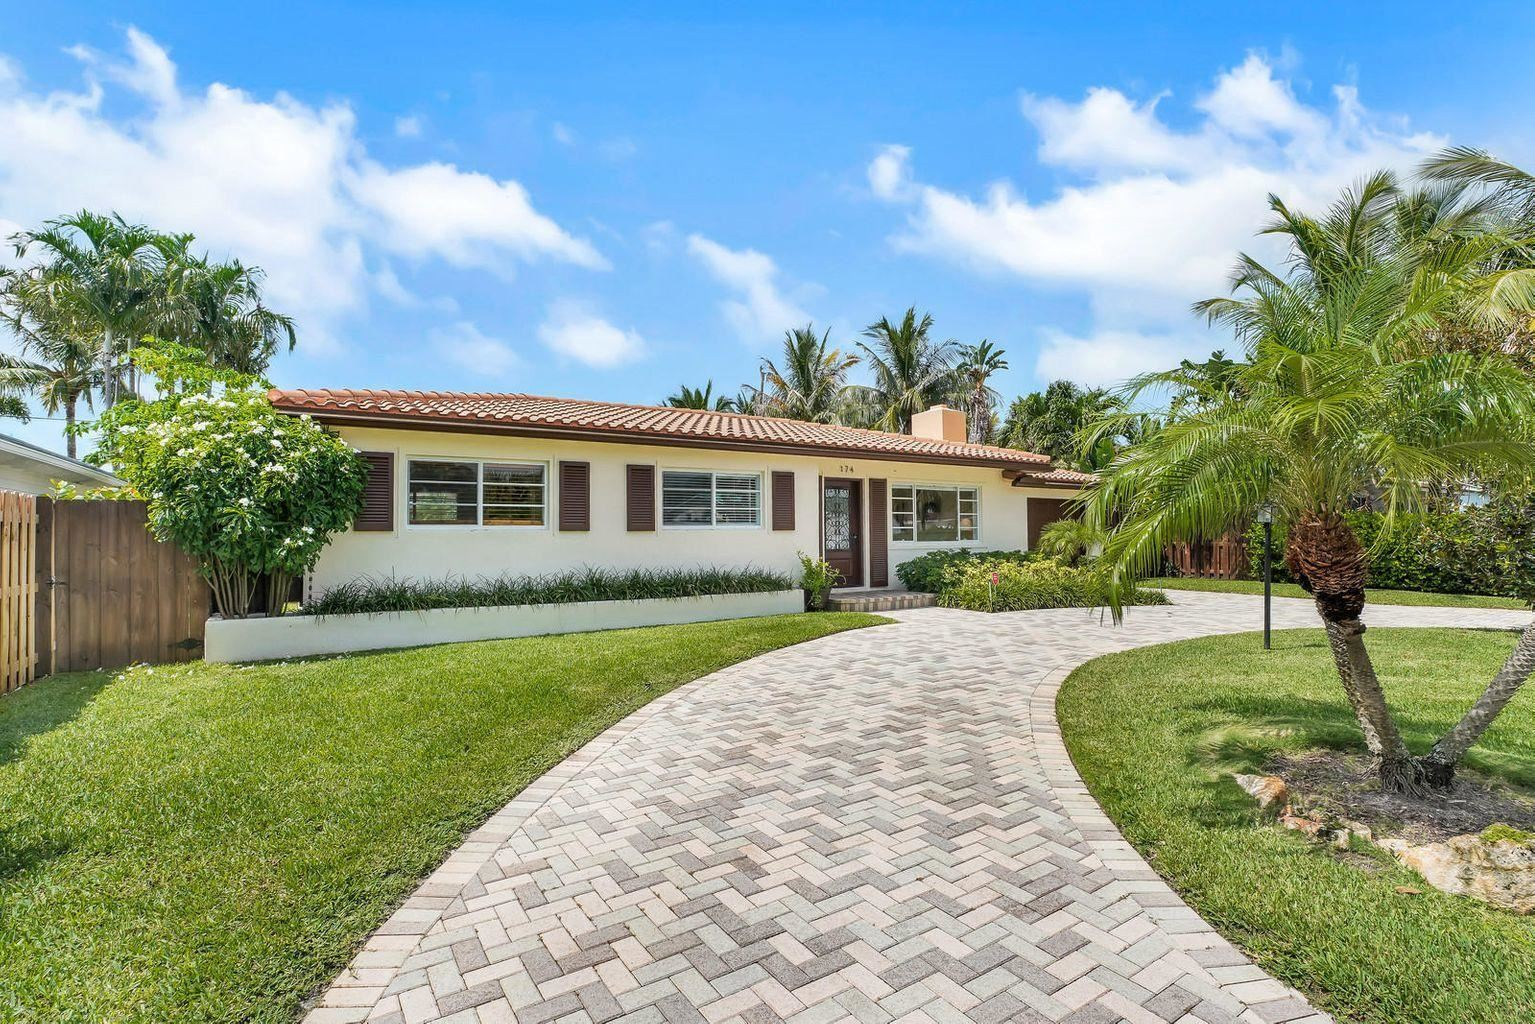 174 Arlington Road, West Palm Beach, FL 33405 - MLS#: RX-10701929